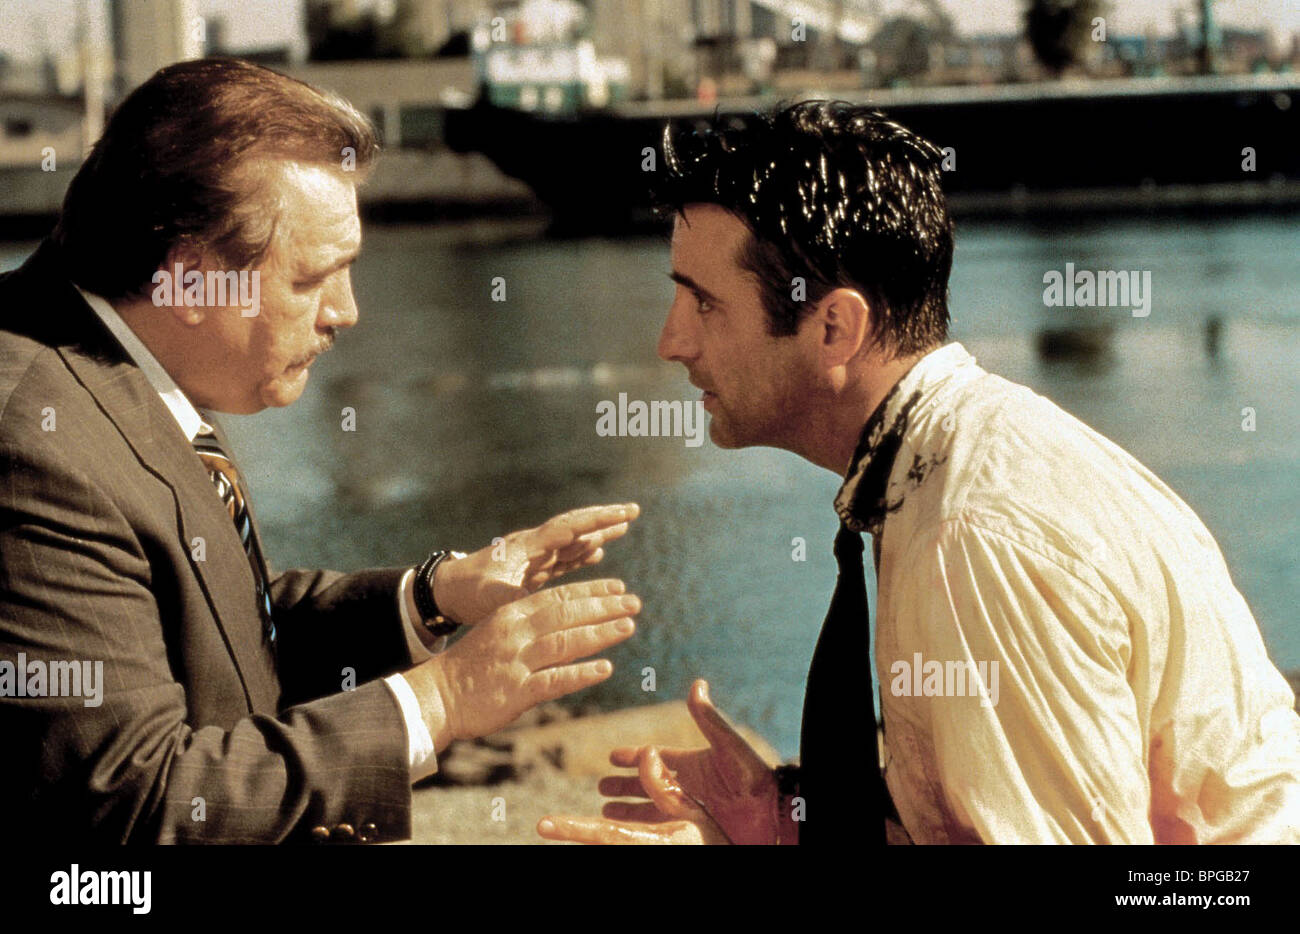 Brian Cox Andy Garcia Desperate Measures 1998 Stock Photo Alamy He always holds on to his girlfriend. brian cox andy garcia desperate measures 1998 stock photo alamy